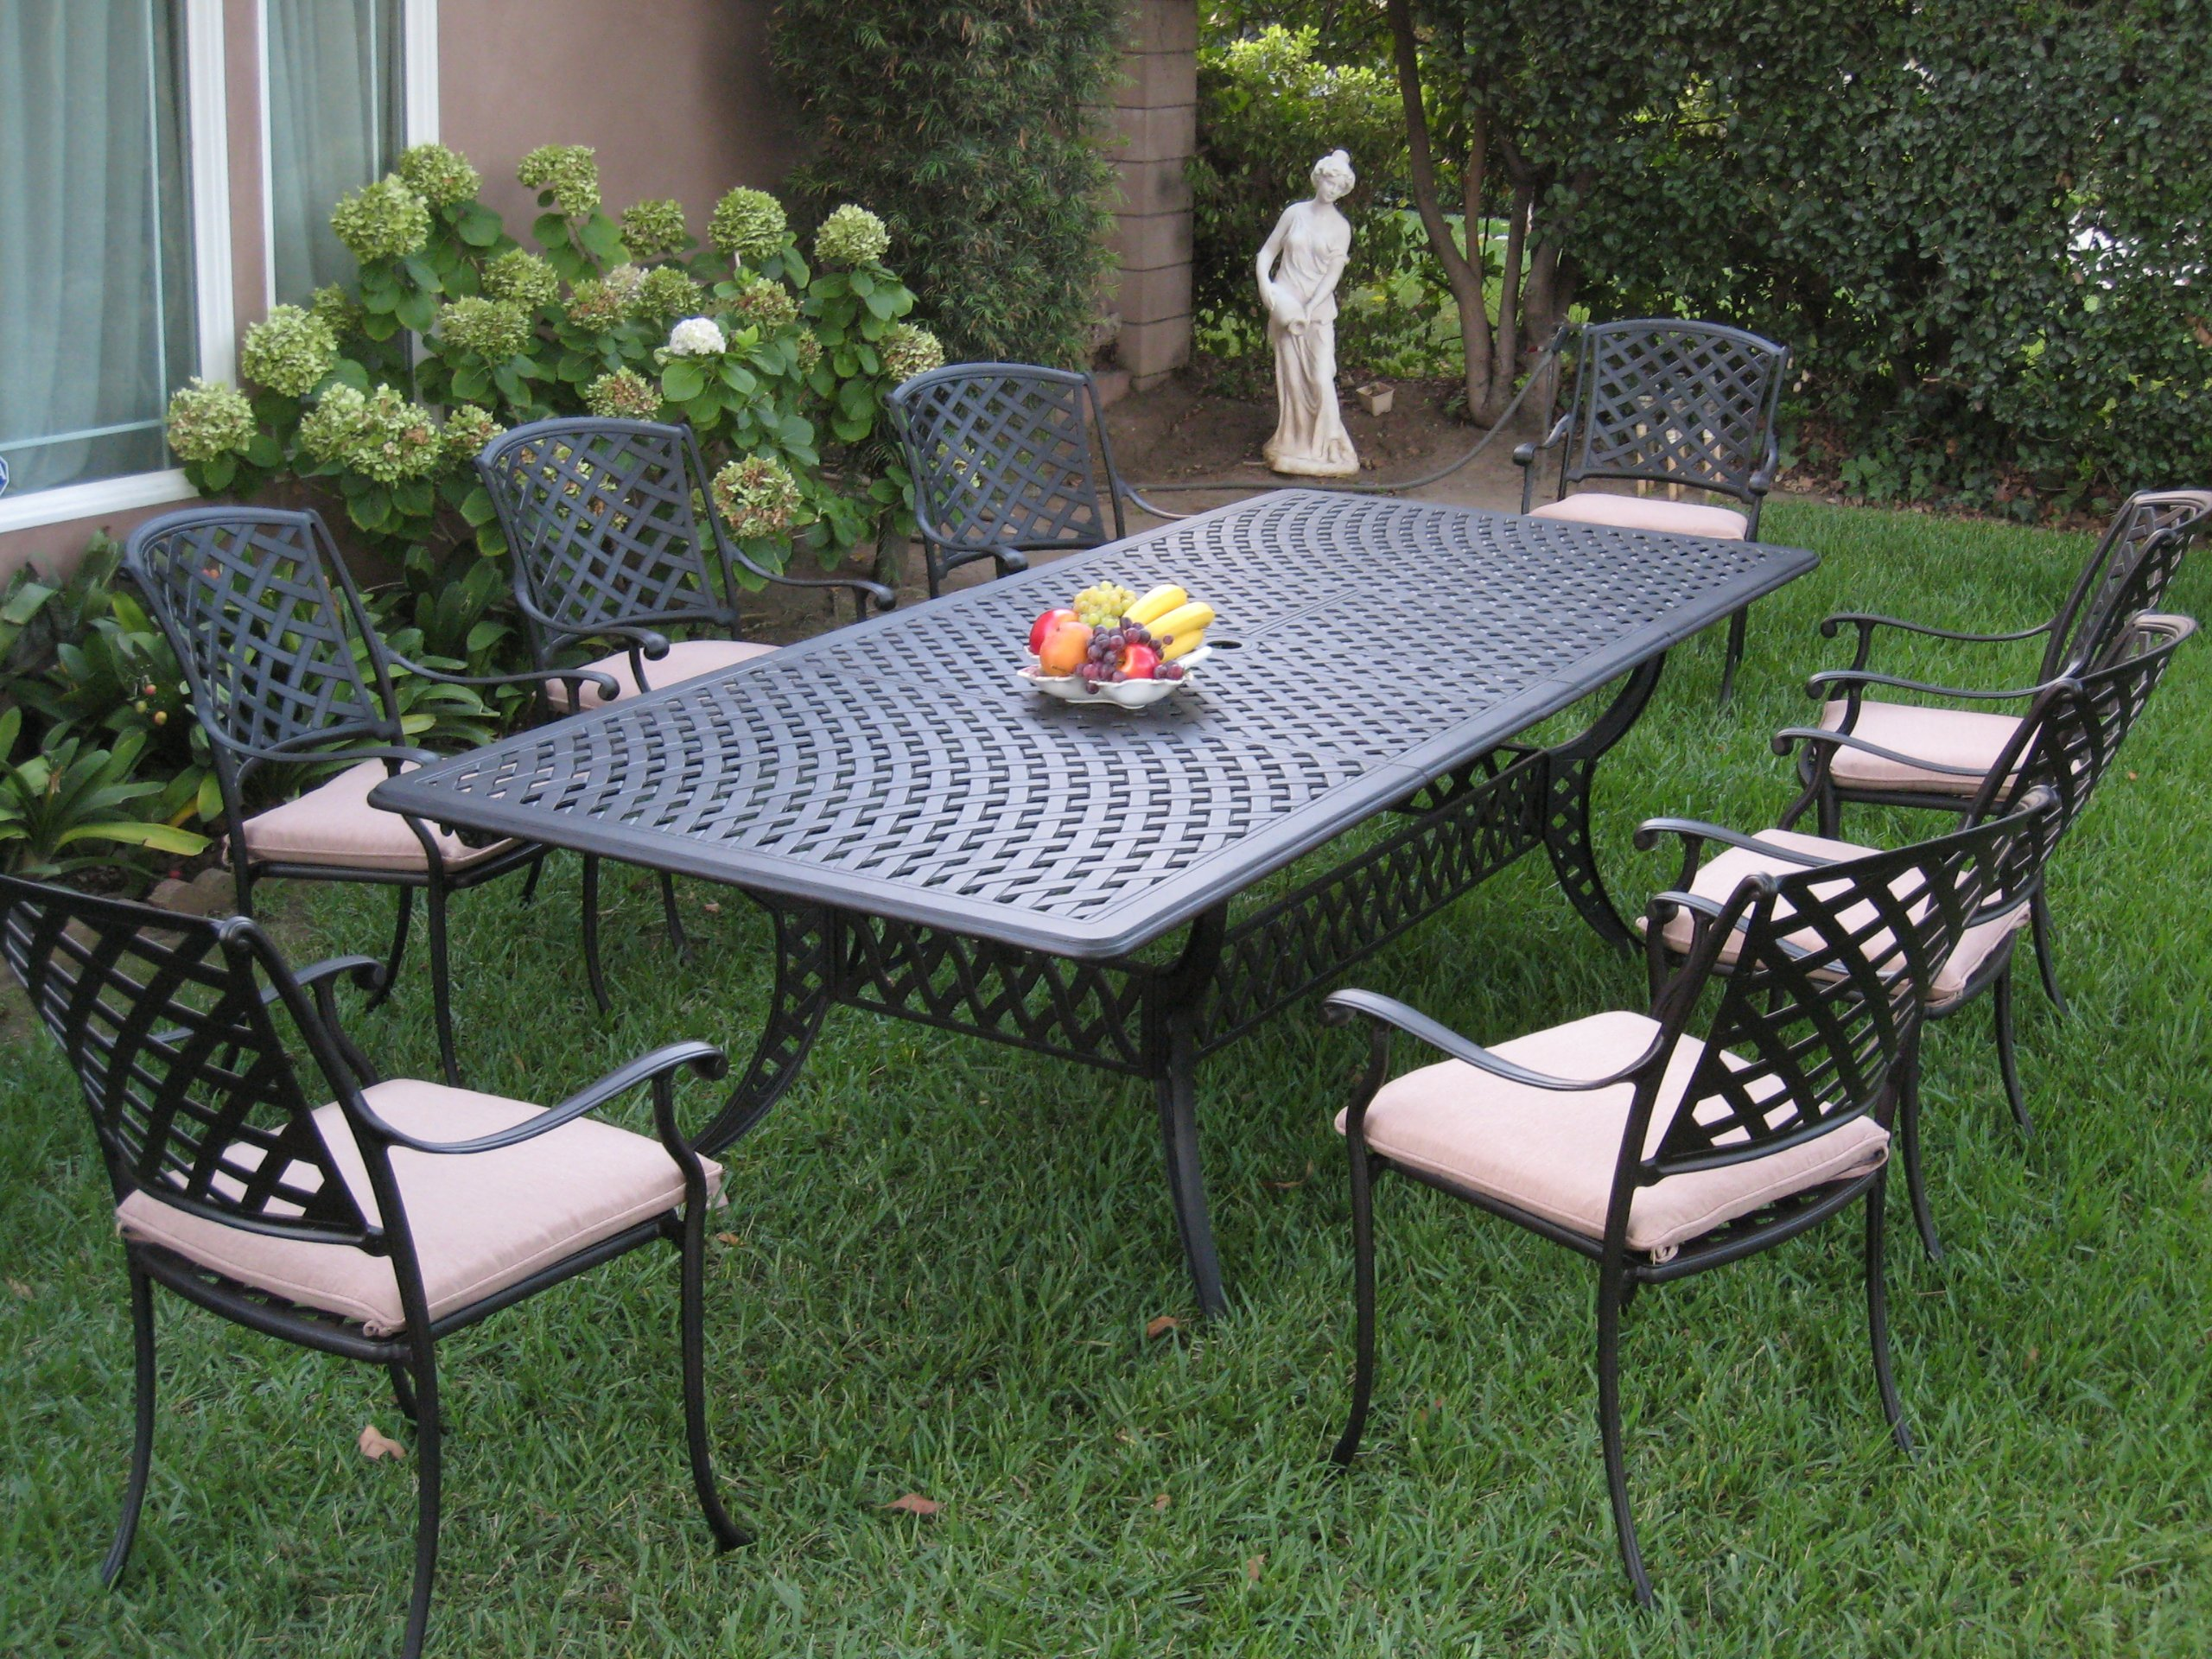 Aluminum Sling Patio Furniture. Comfortable Seating for Outdoor Settings